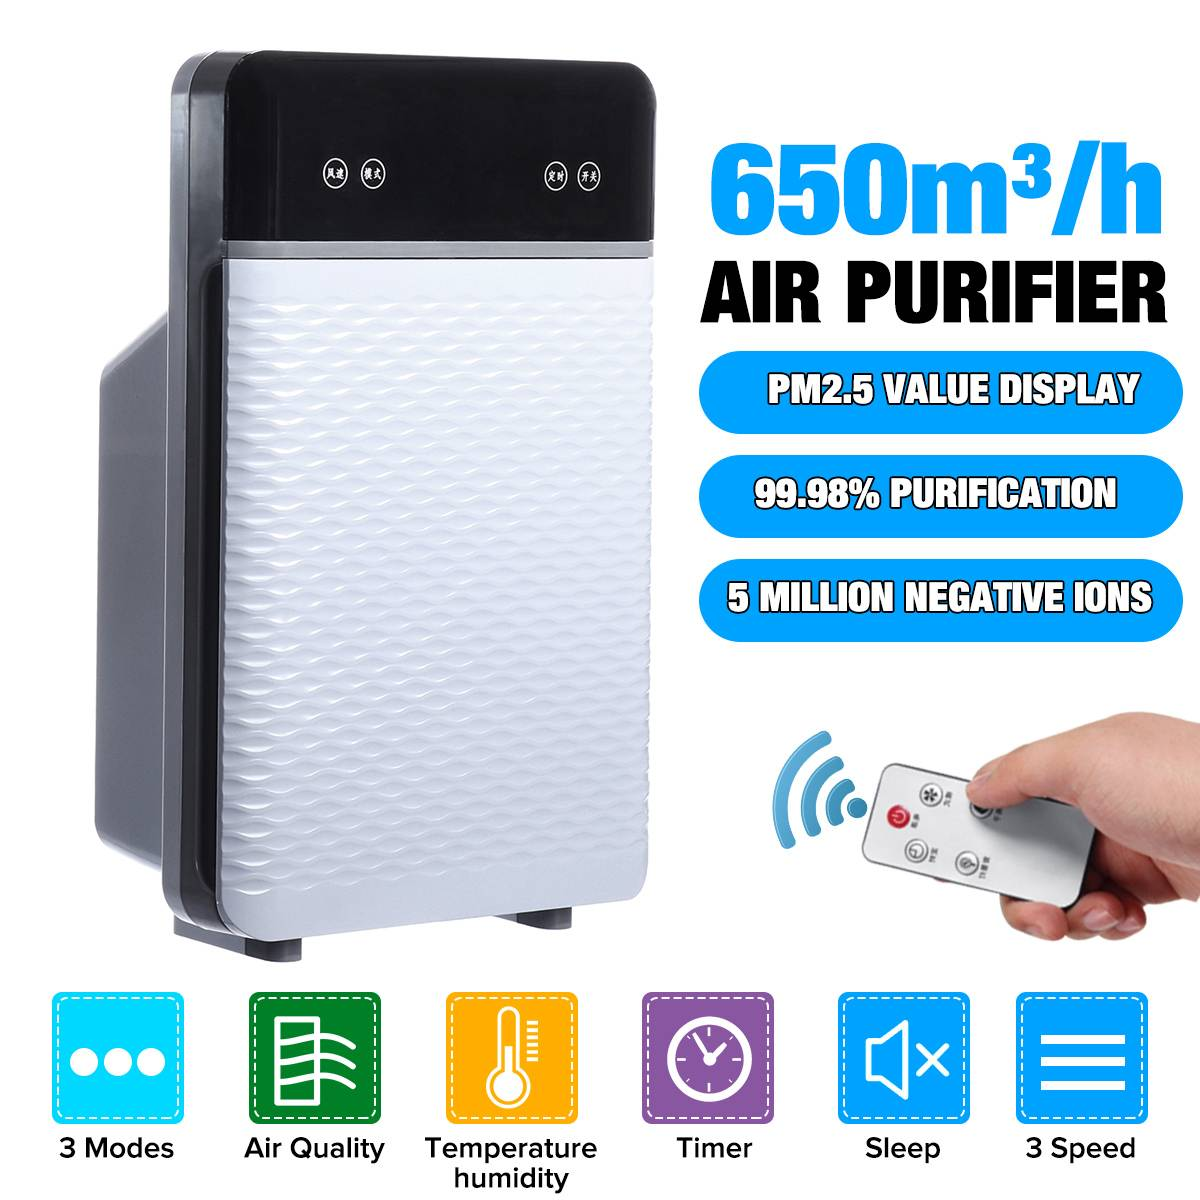 AUGIENB Air Purifier HEPA Filter Air Cleaner Fresh Ozone Home Car Smoke Formaldehyde Mist Removal Sterilizer Remote Control